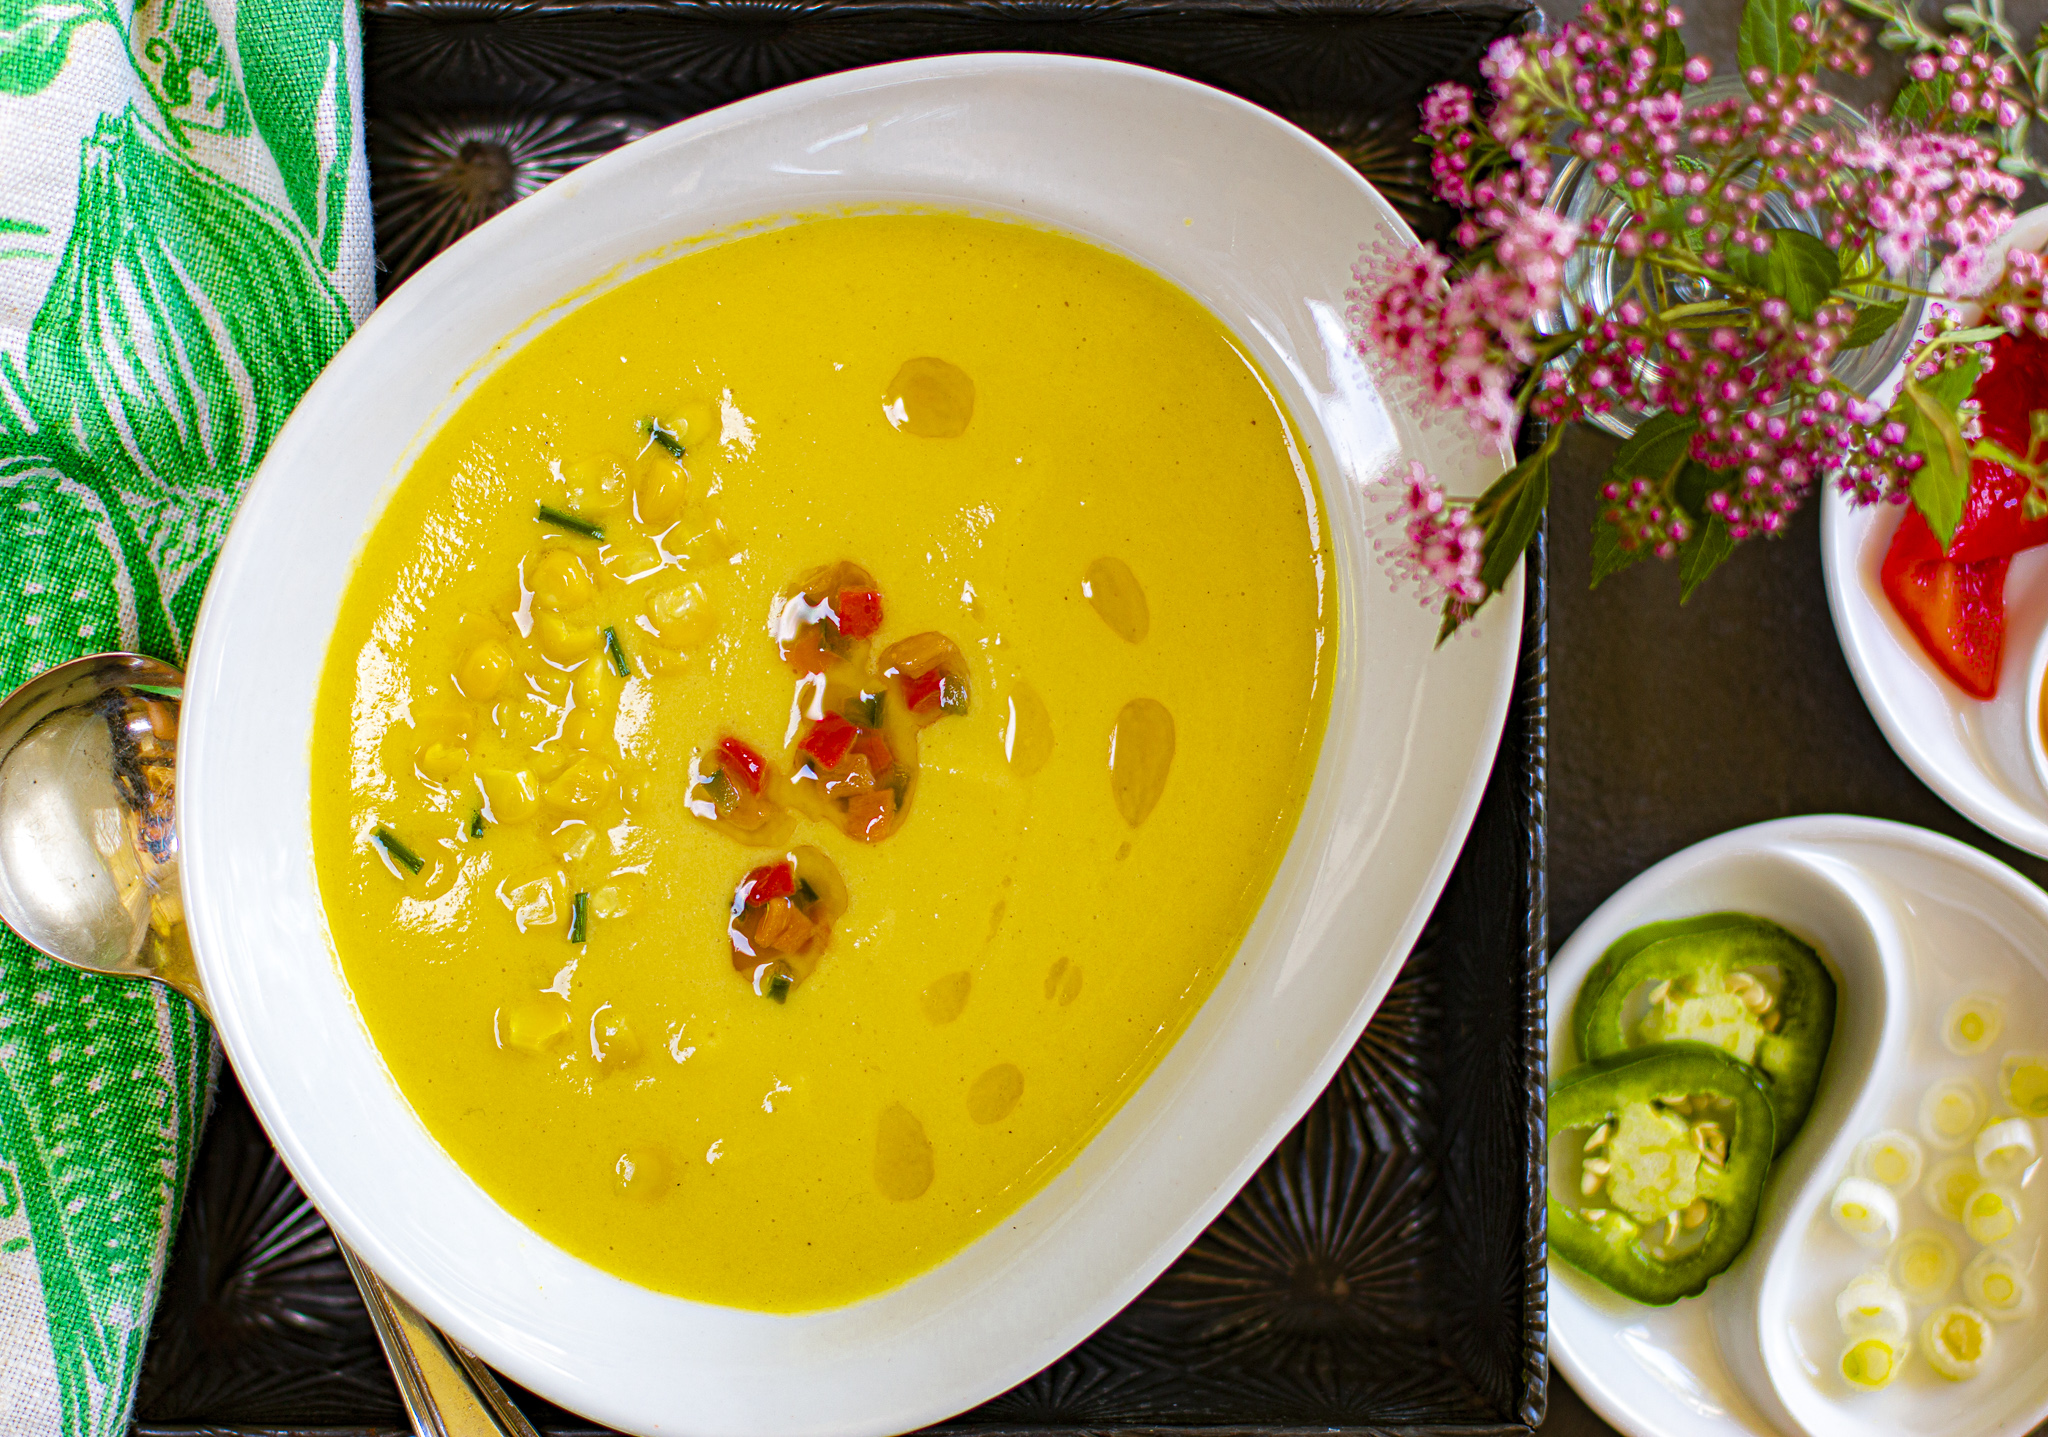 Velvety Cool Corn Soup with a Roasted Peppers & Jalapeño Garnish